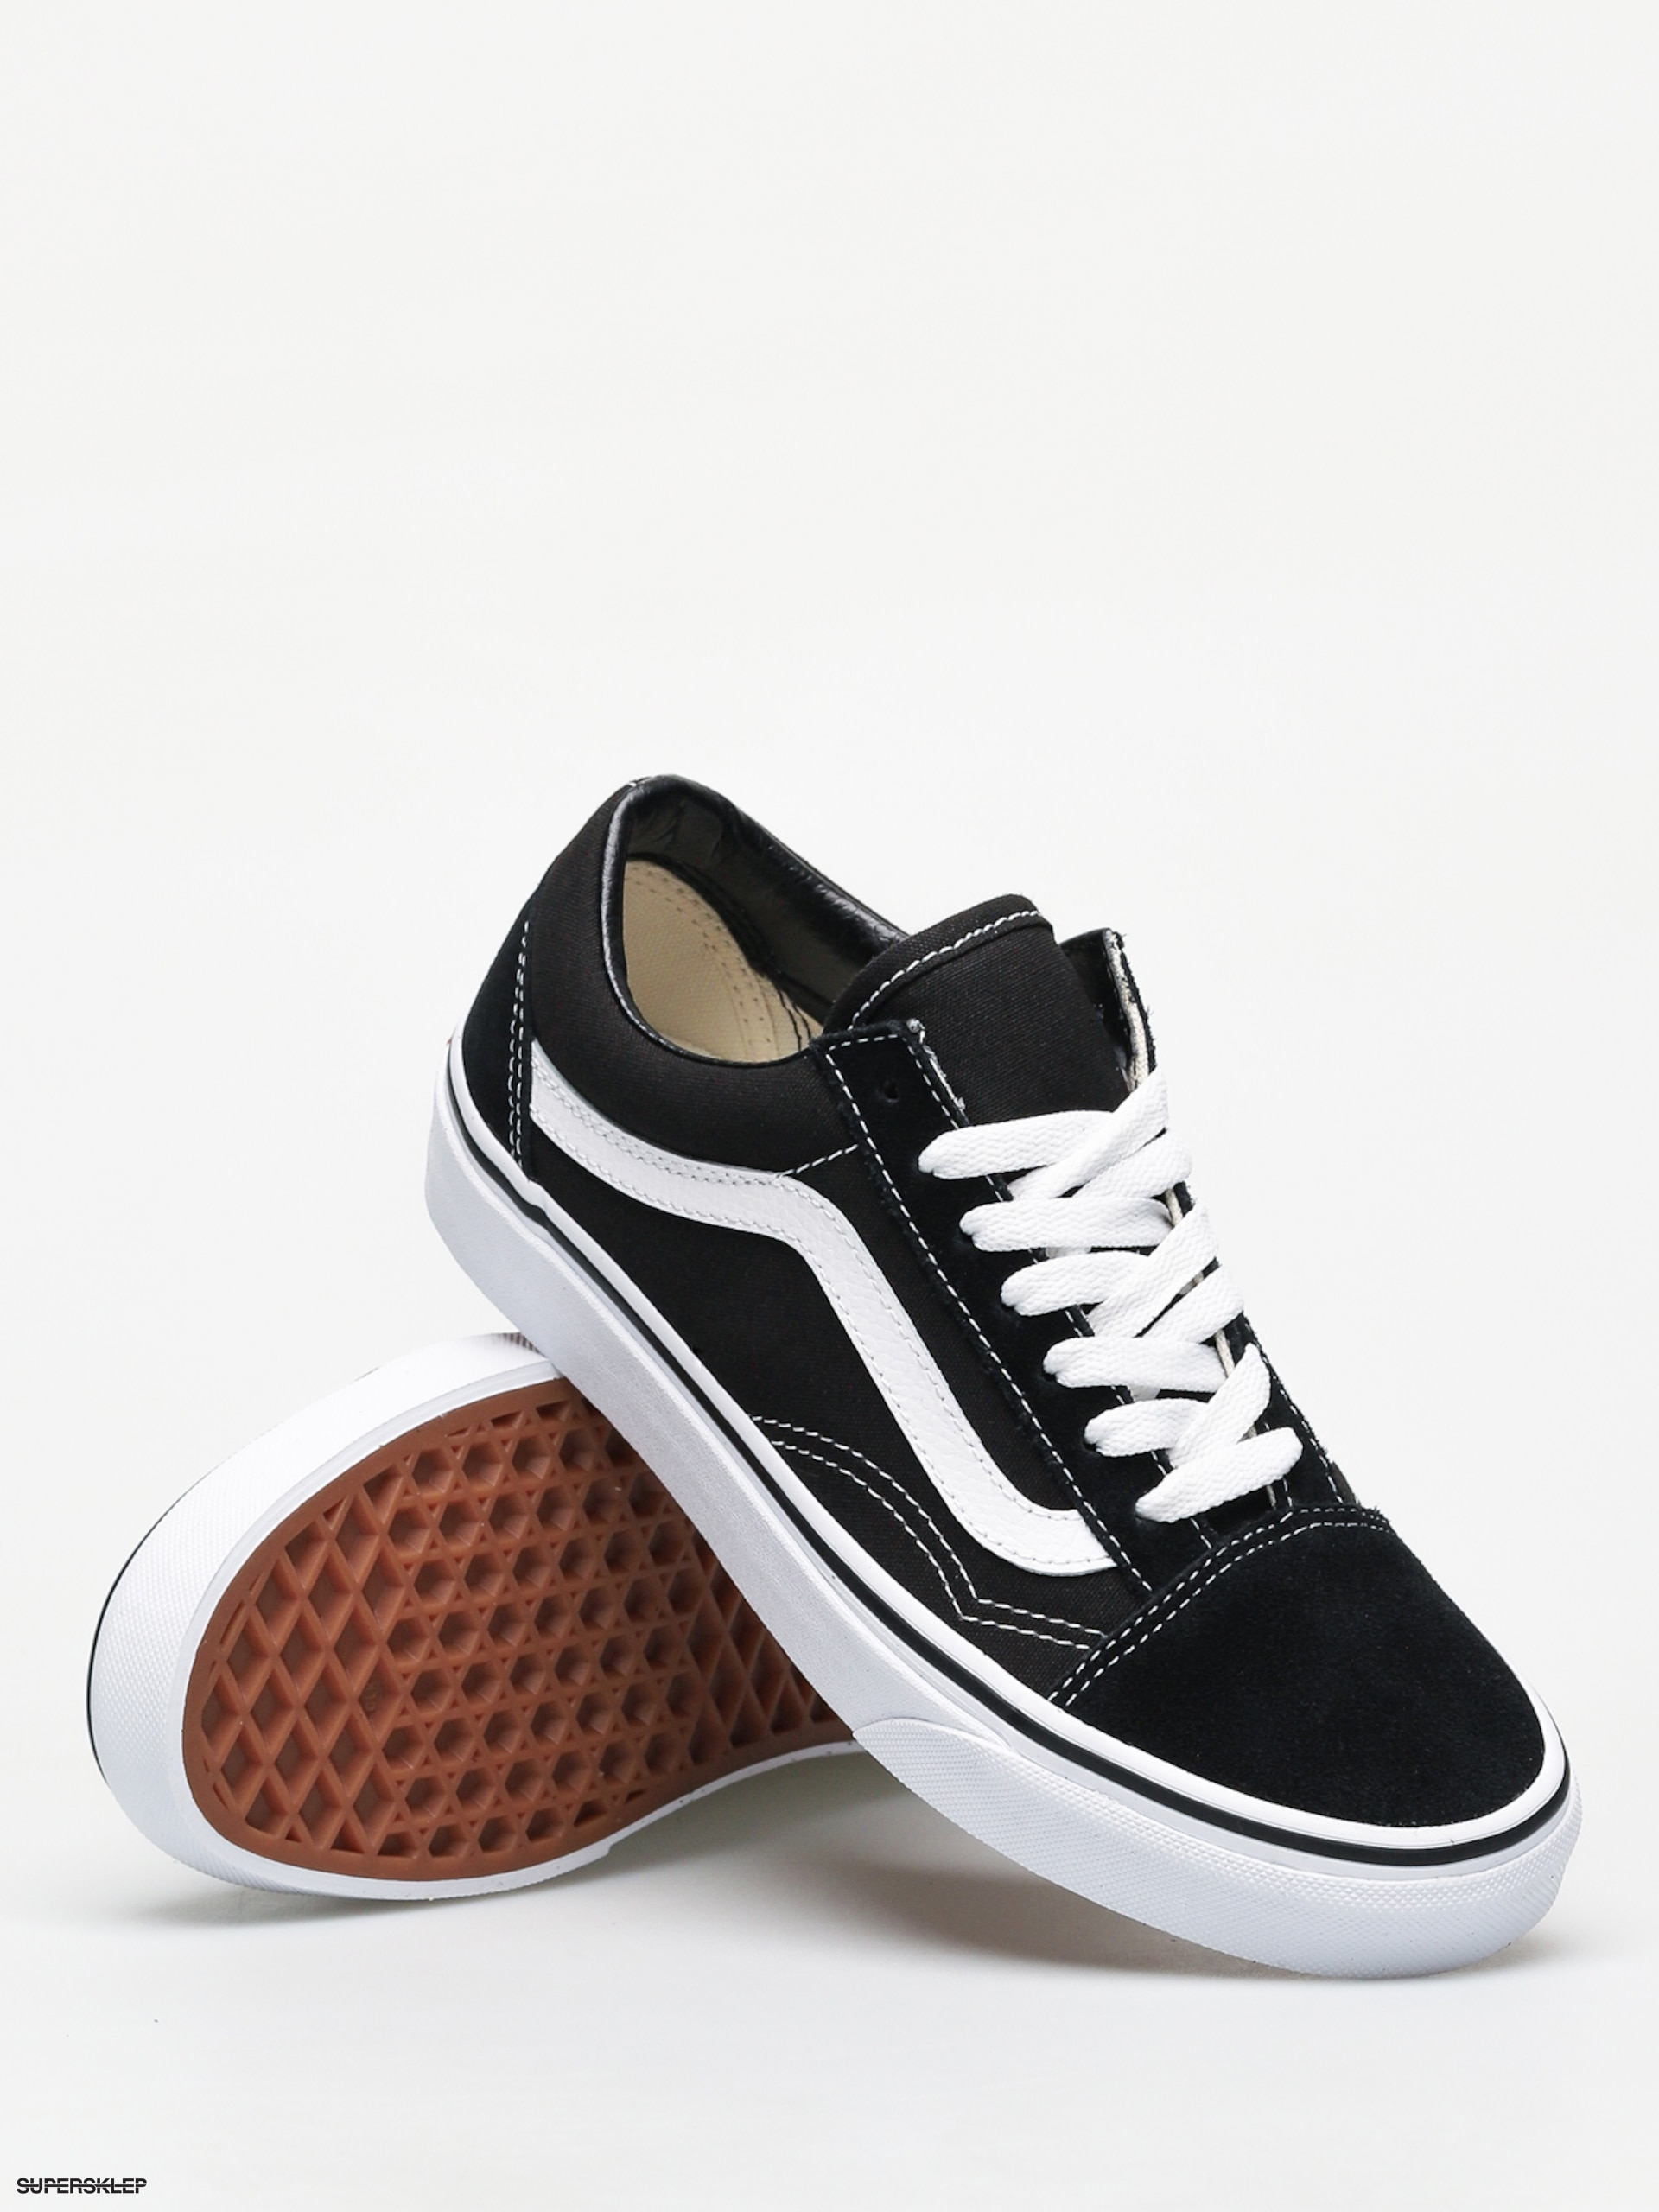 Vans White Old Skool | White shoes, Shoes, Vans shoes